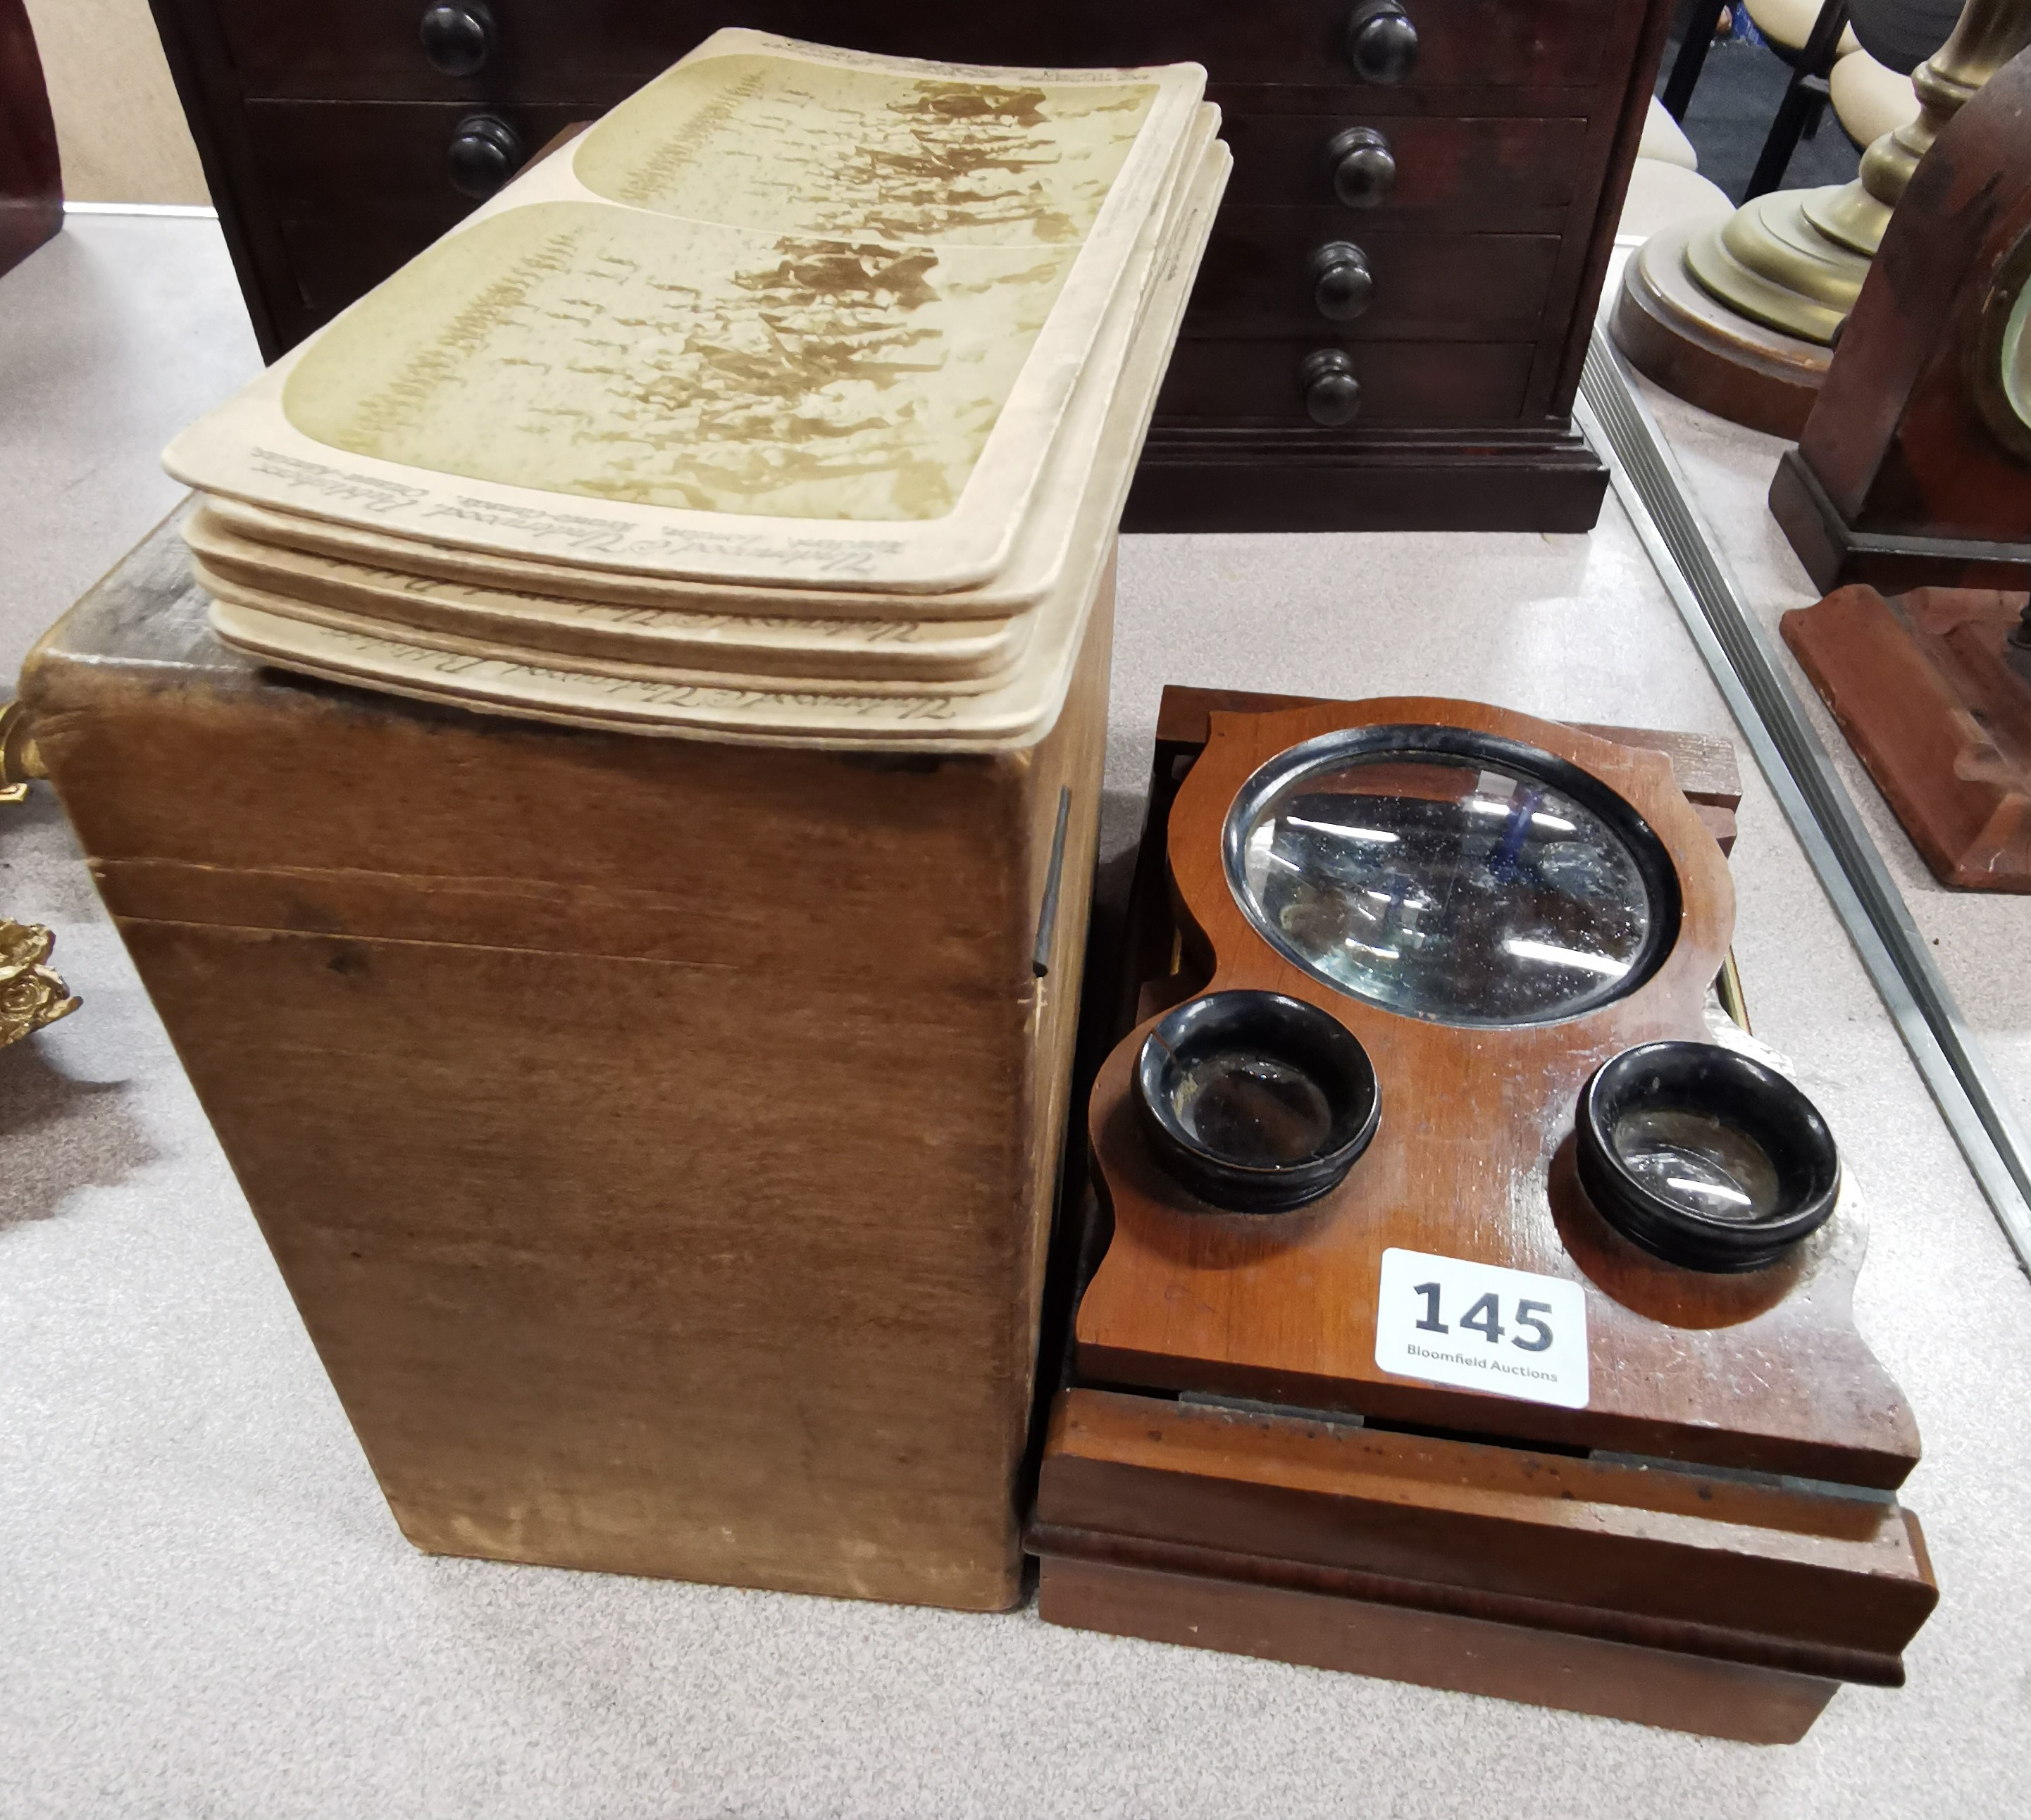 Lot 145 - ANTIQUE STEREO VIEWER, CARDS & PLATES